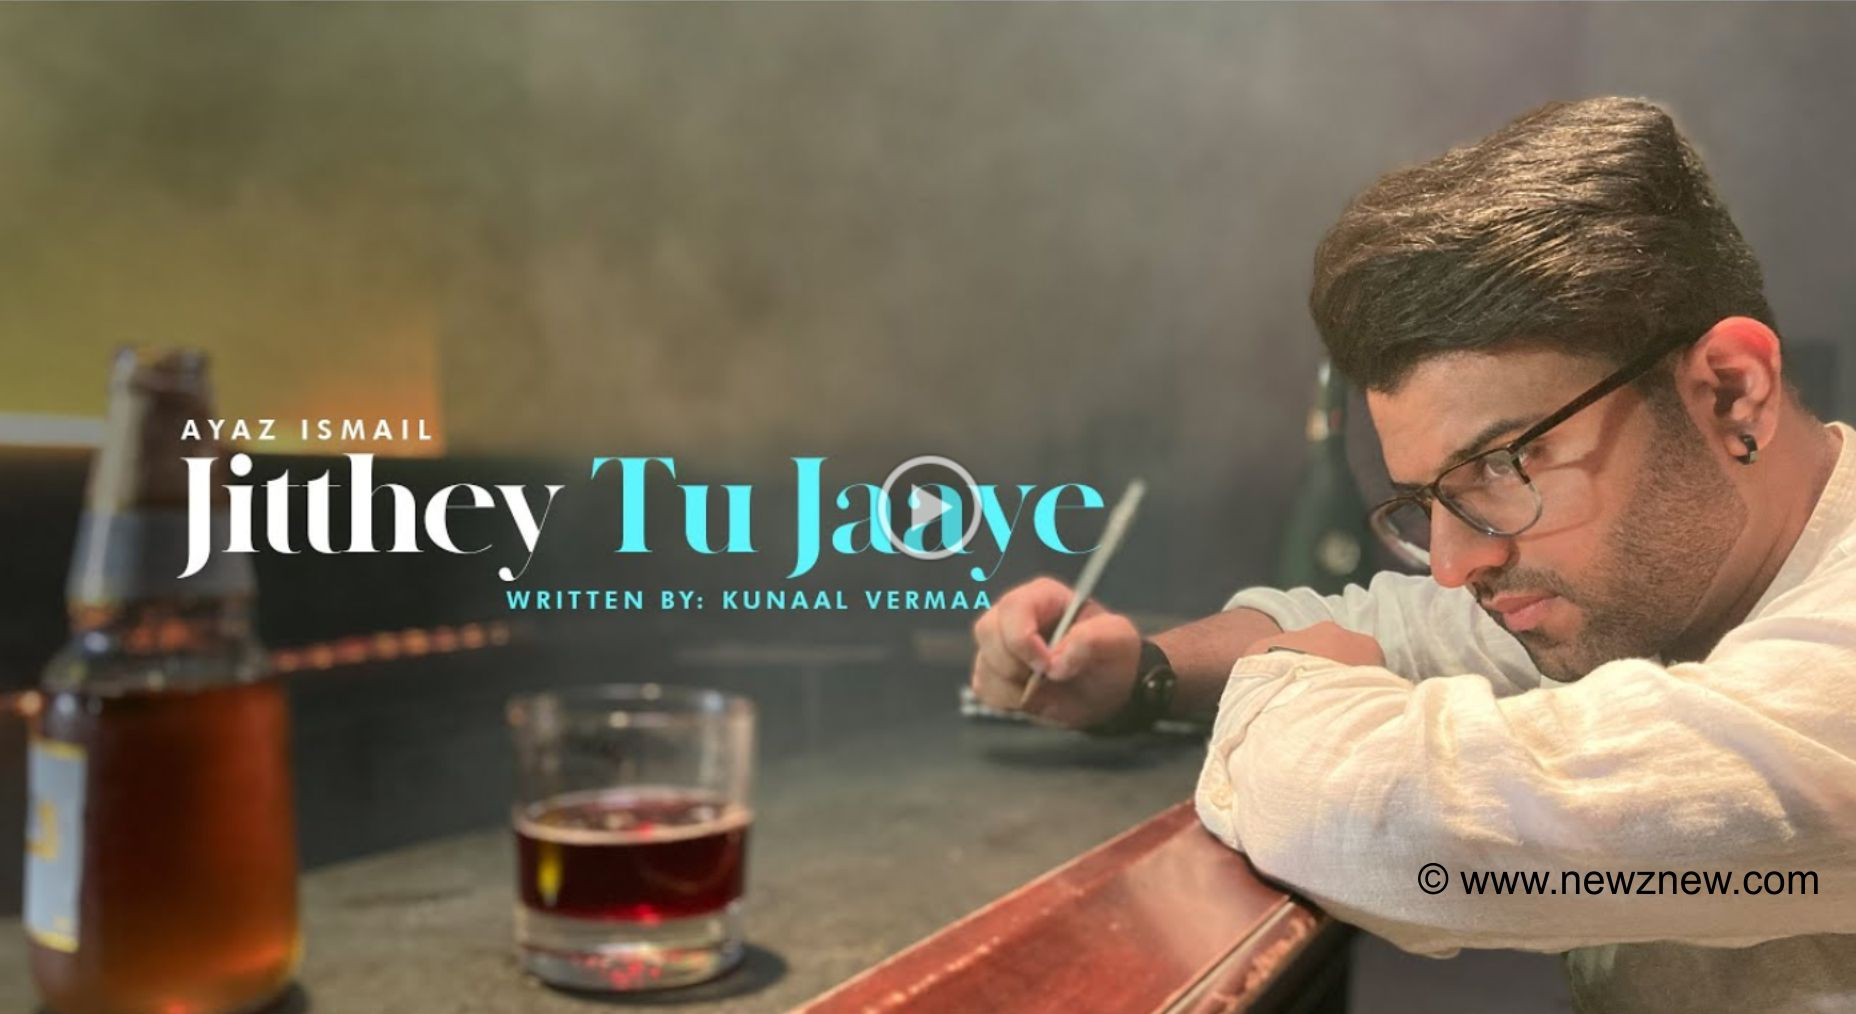 Ayaz Ismail's Jitthey Tu Jaaye Crosses 2 Million Views in 10 Days